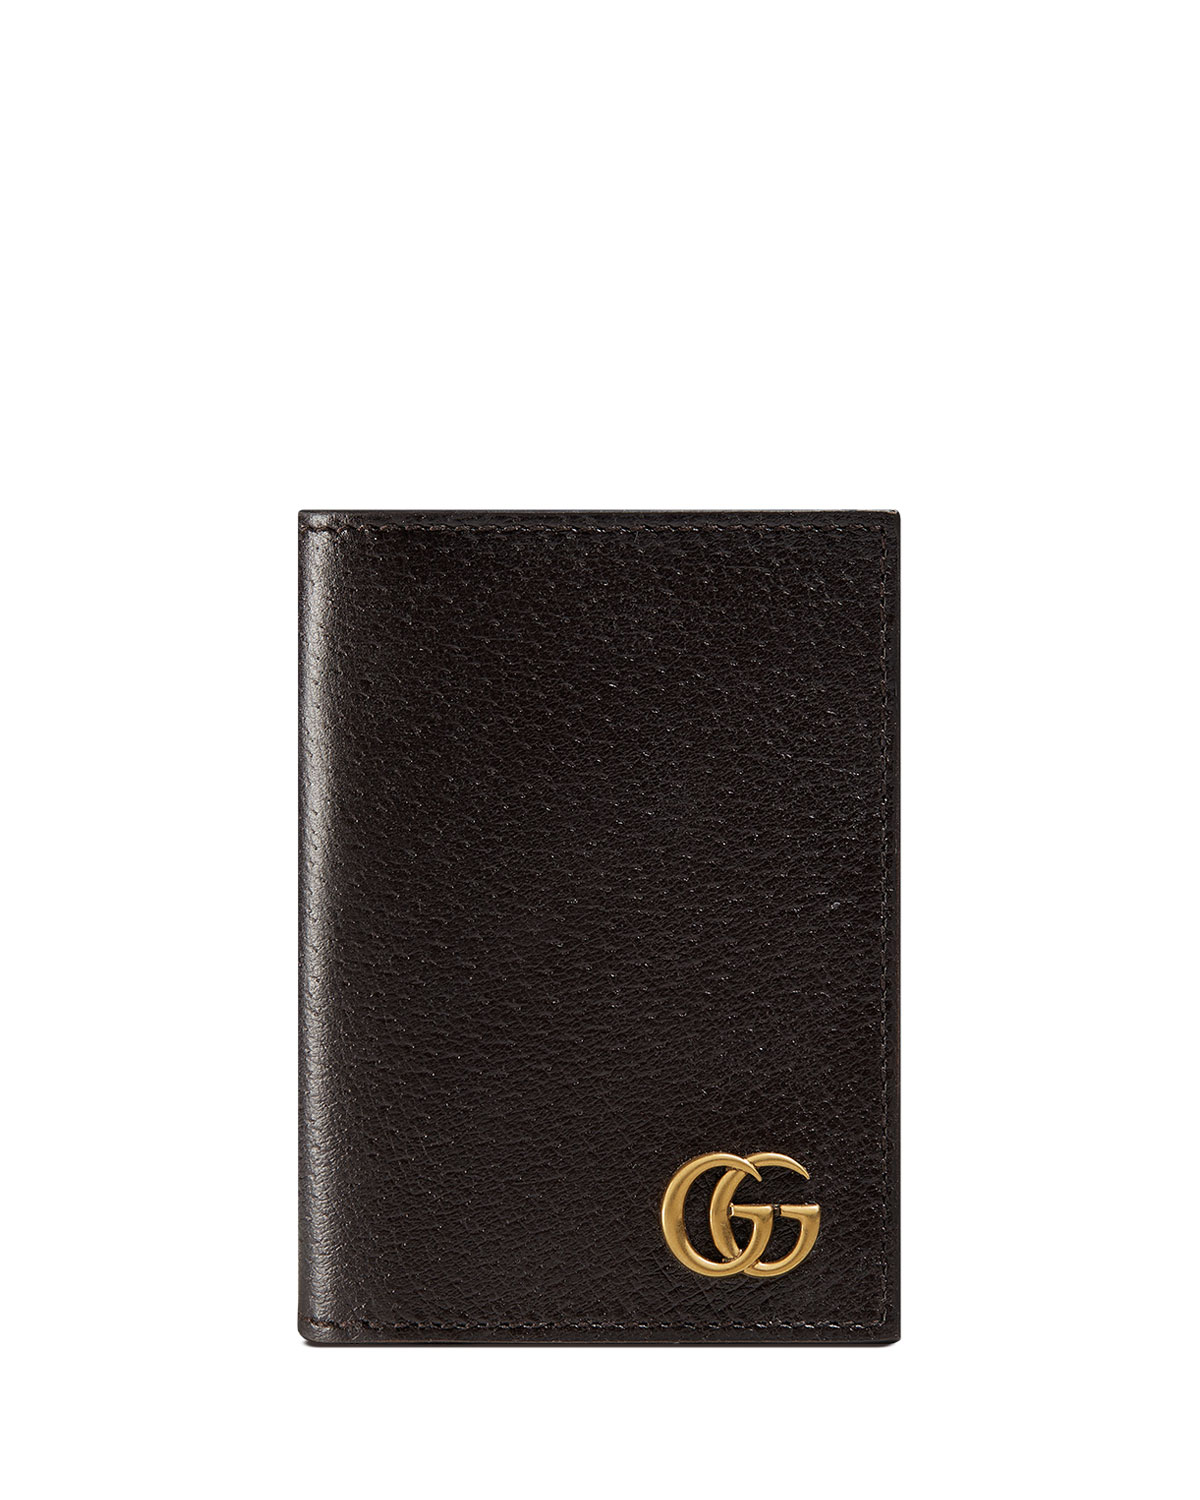 Gucci GG Marmont Leather Fold-Over Card Case   Neiman Marcus